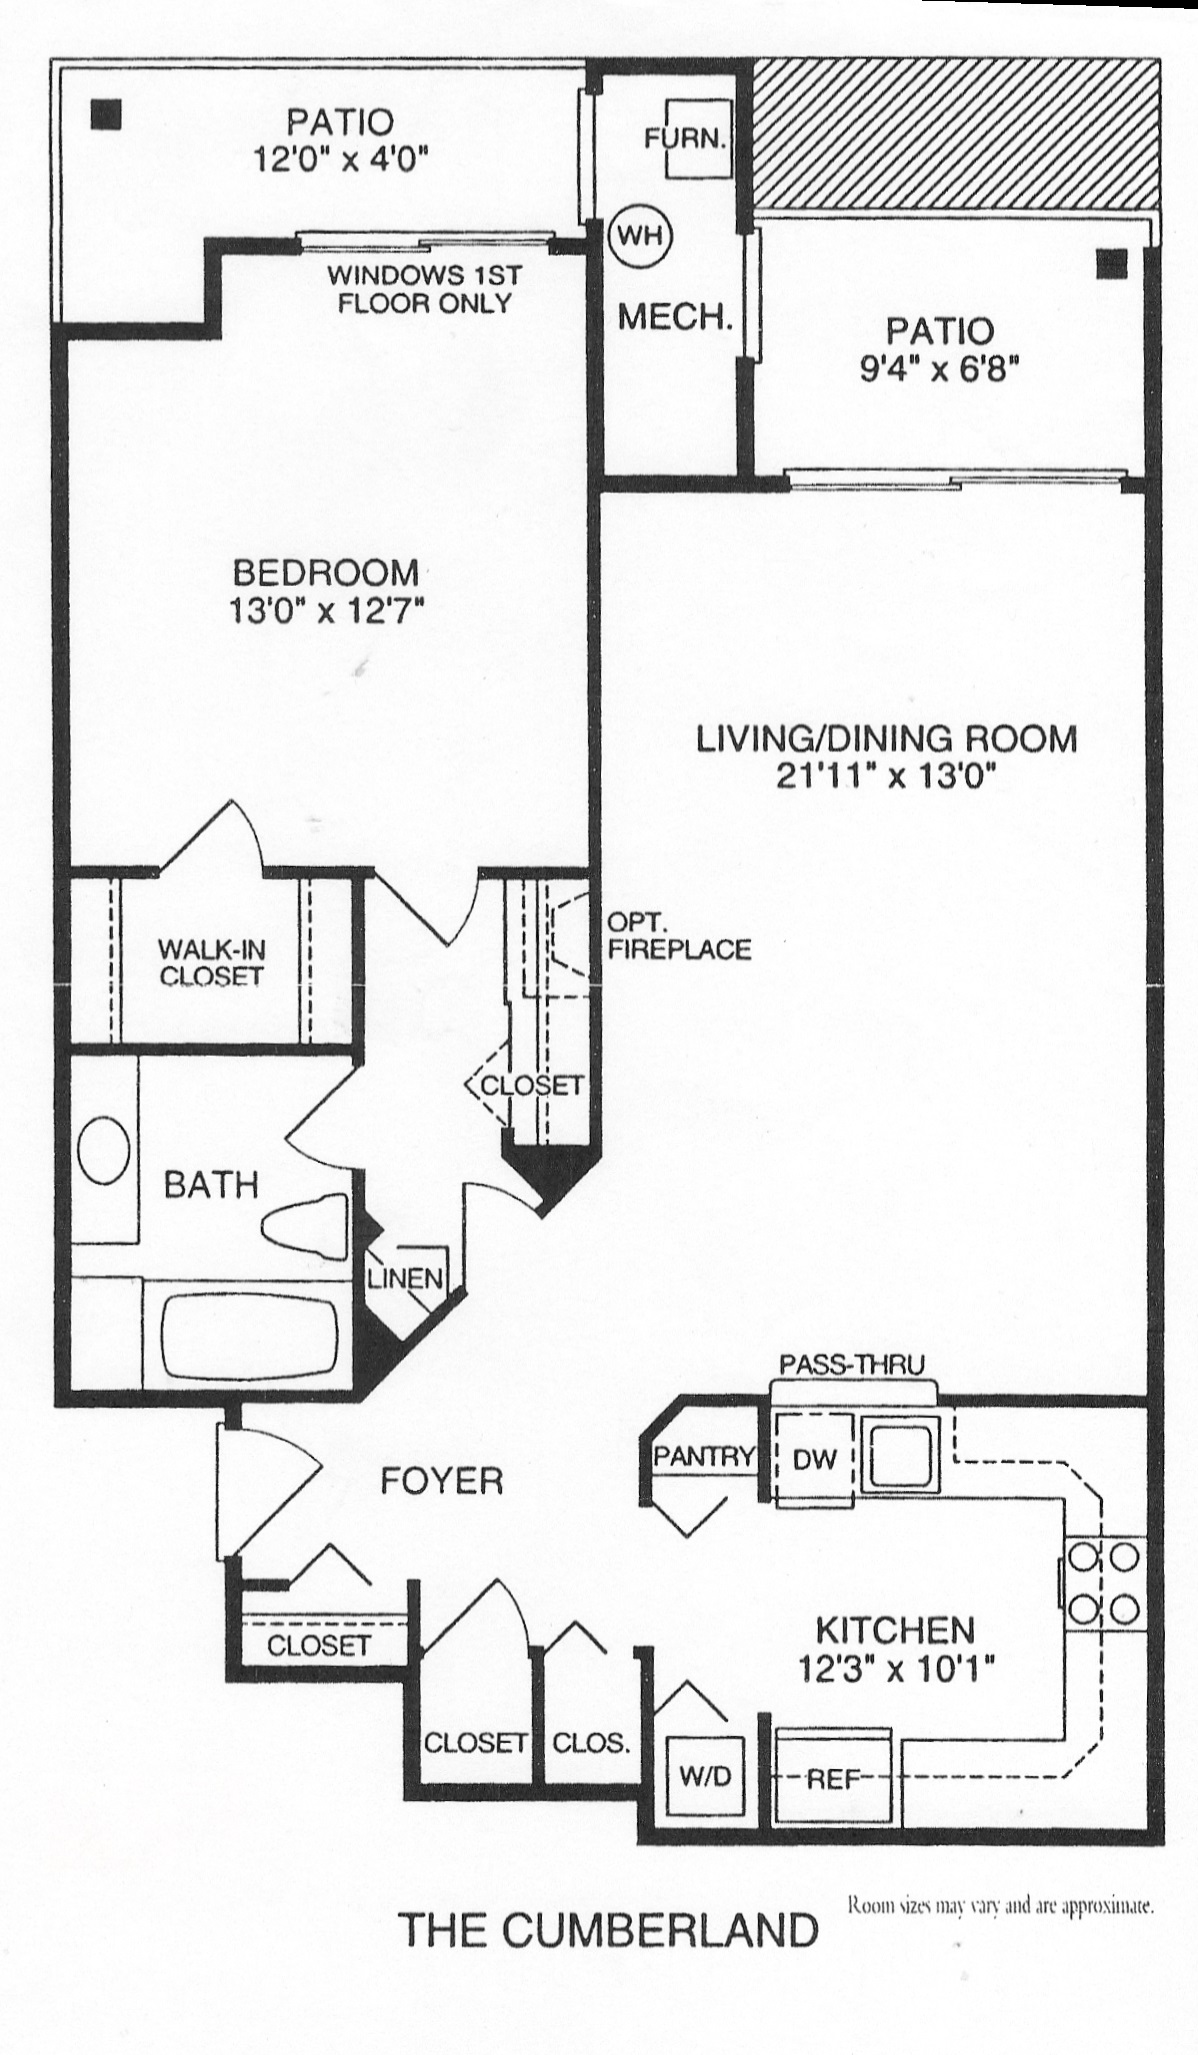 Condo building floor plans condominium plan friv 5 games for Condominium floor plan